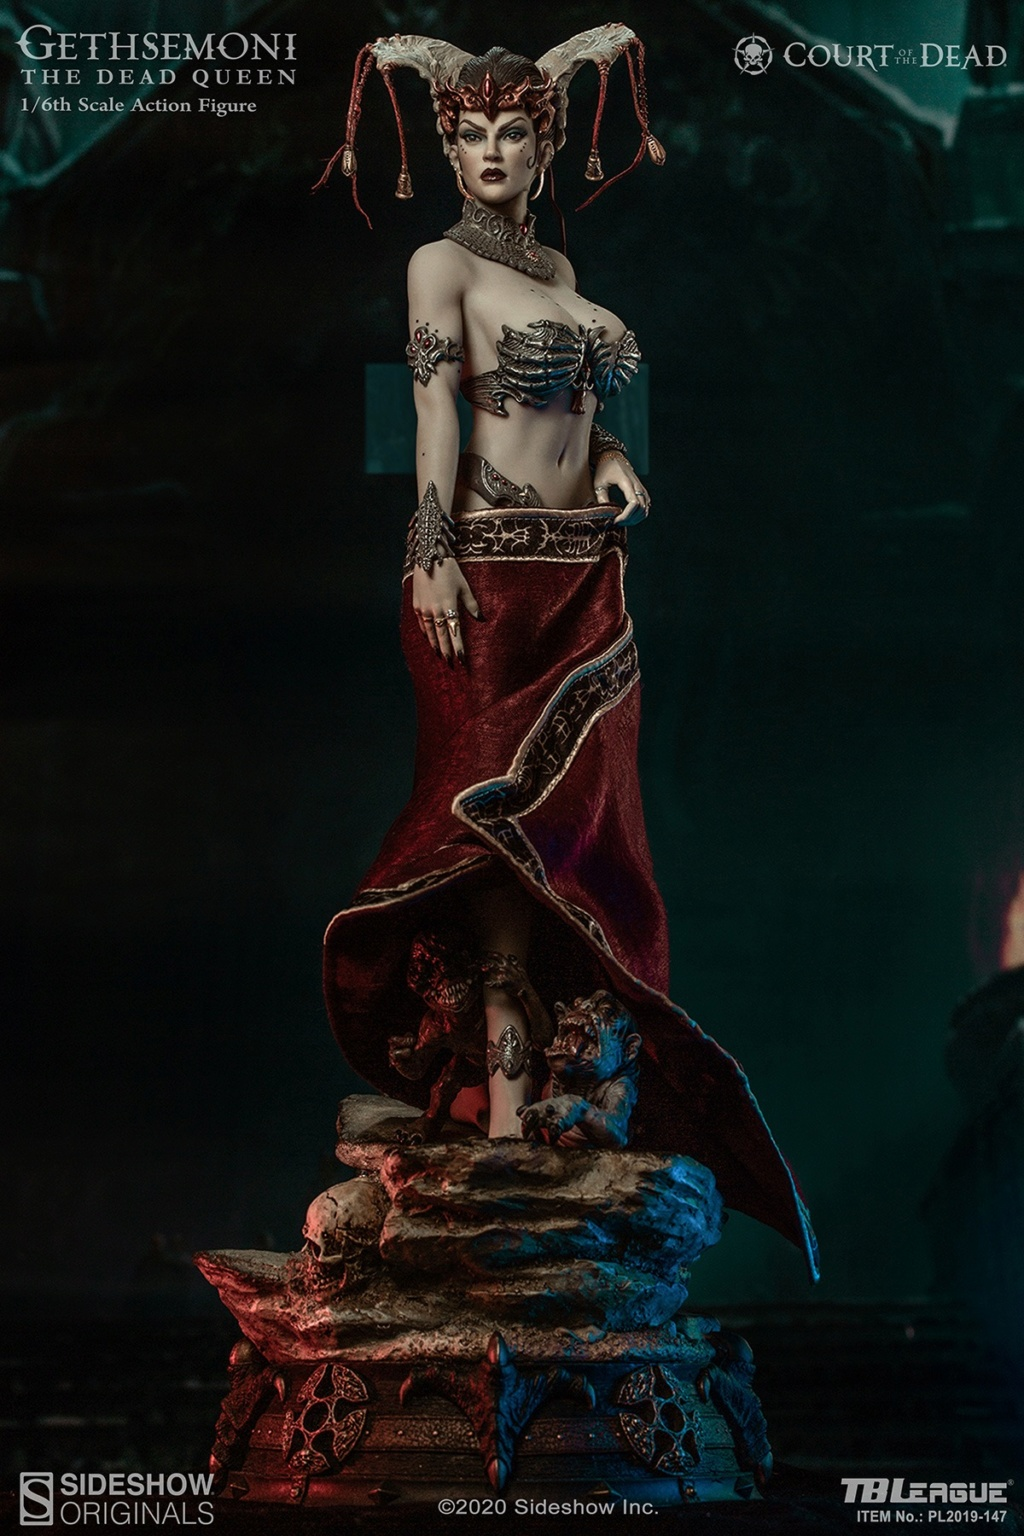 sideshow - NEW PRODUCT: Tbleague x SIDESHOW New: 1/6 Court of the Dead: Gethsemoni The Dead Queen action figure (PL2019-147) 16502510